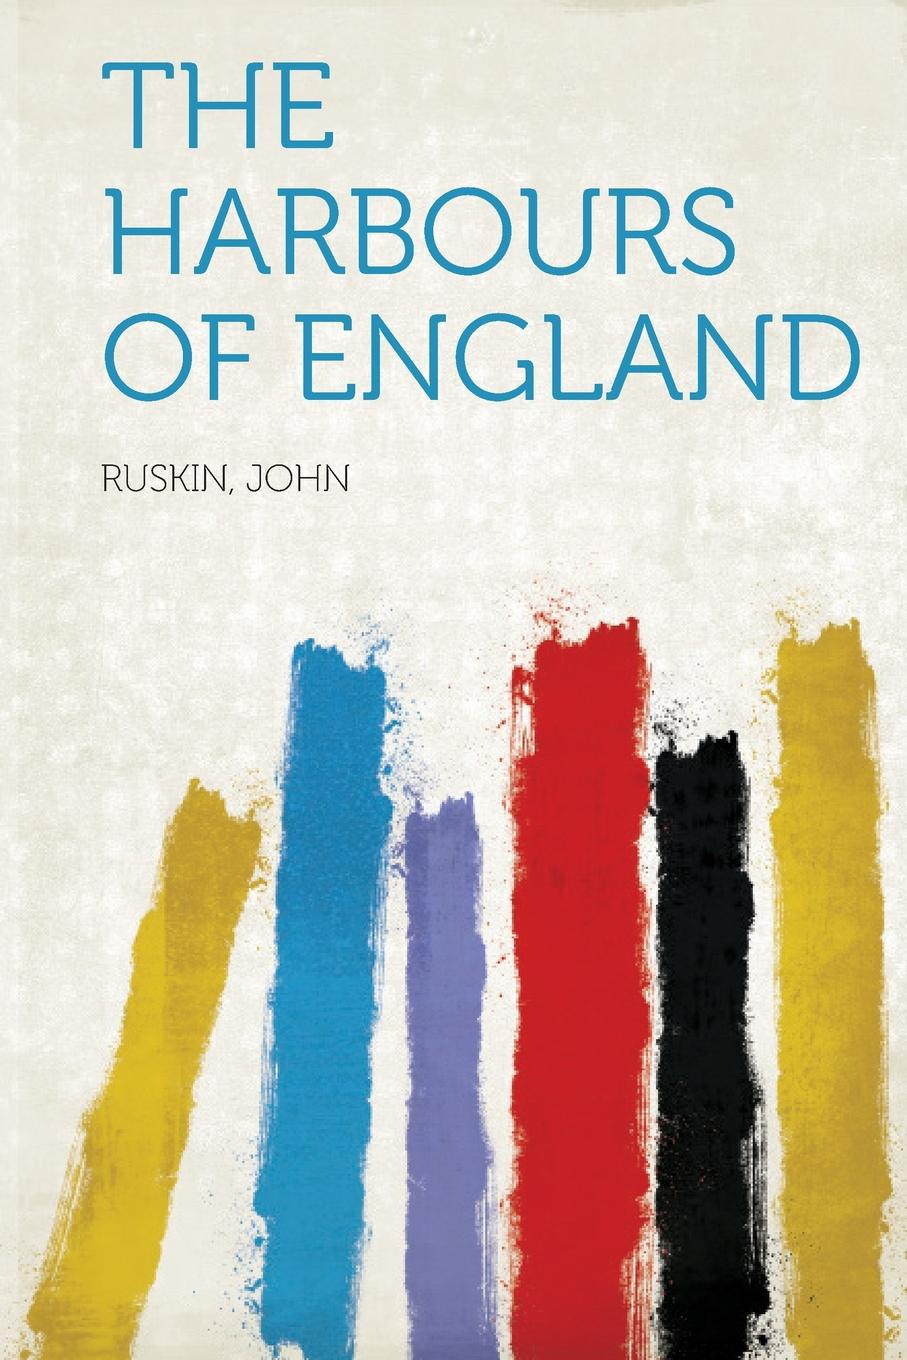 The Harbours of England